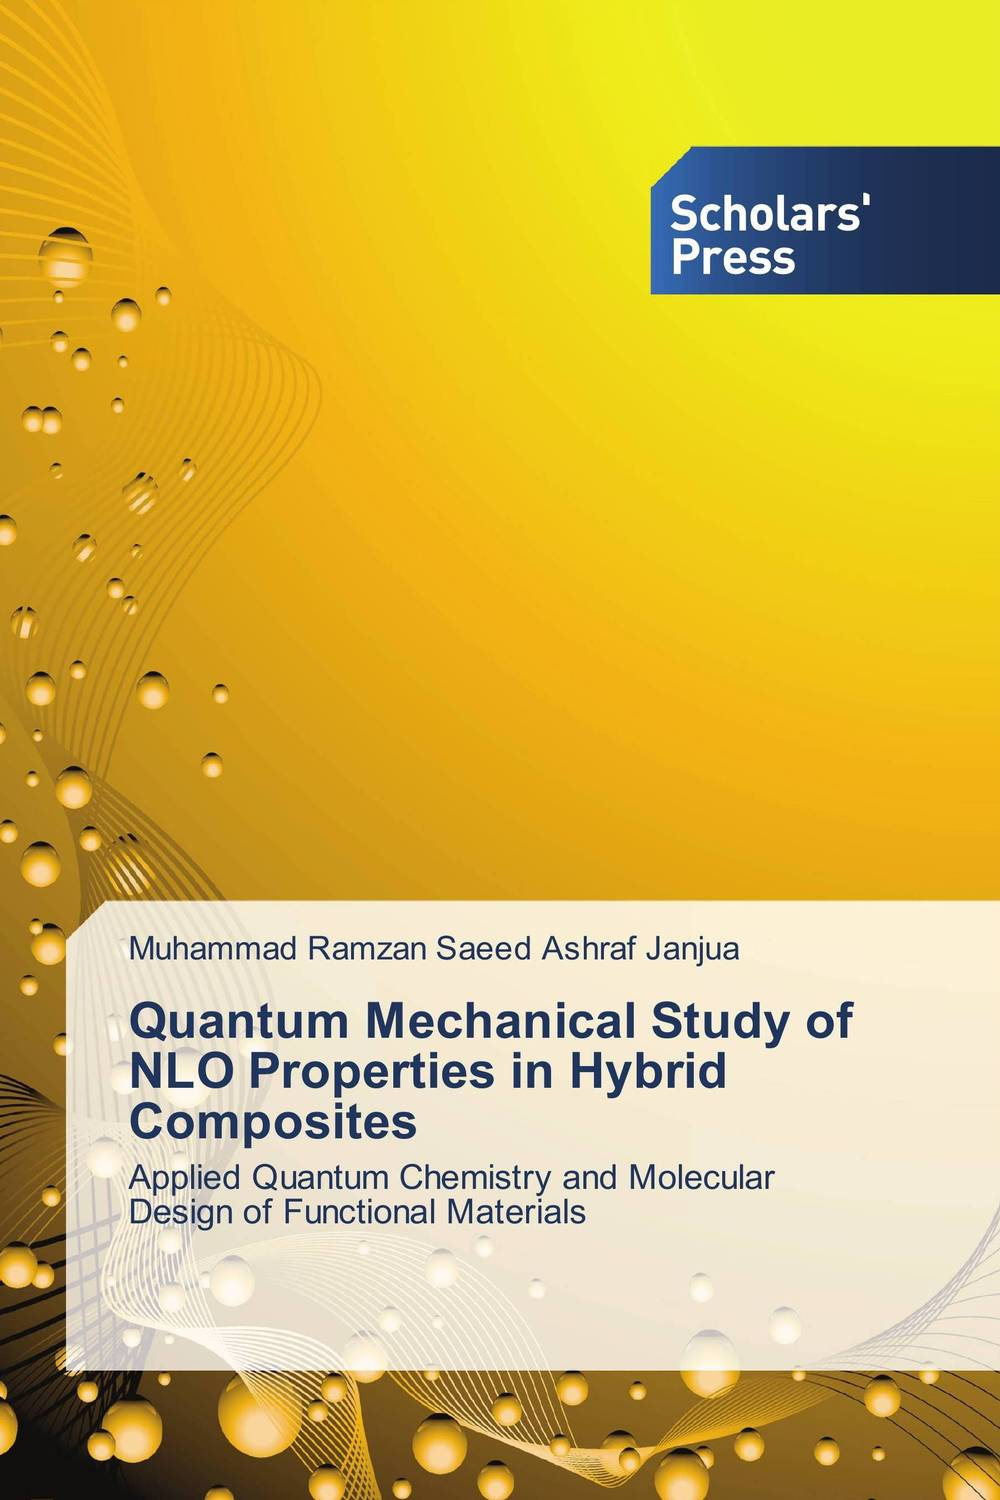 Quantum Mechanical Study of NLO Properties in Hybrid Composites optical and electronic properties of diamondoids